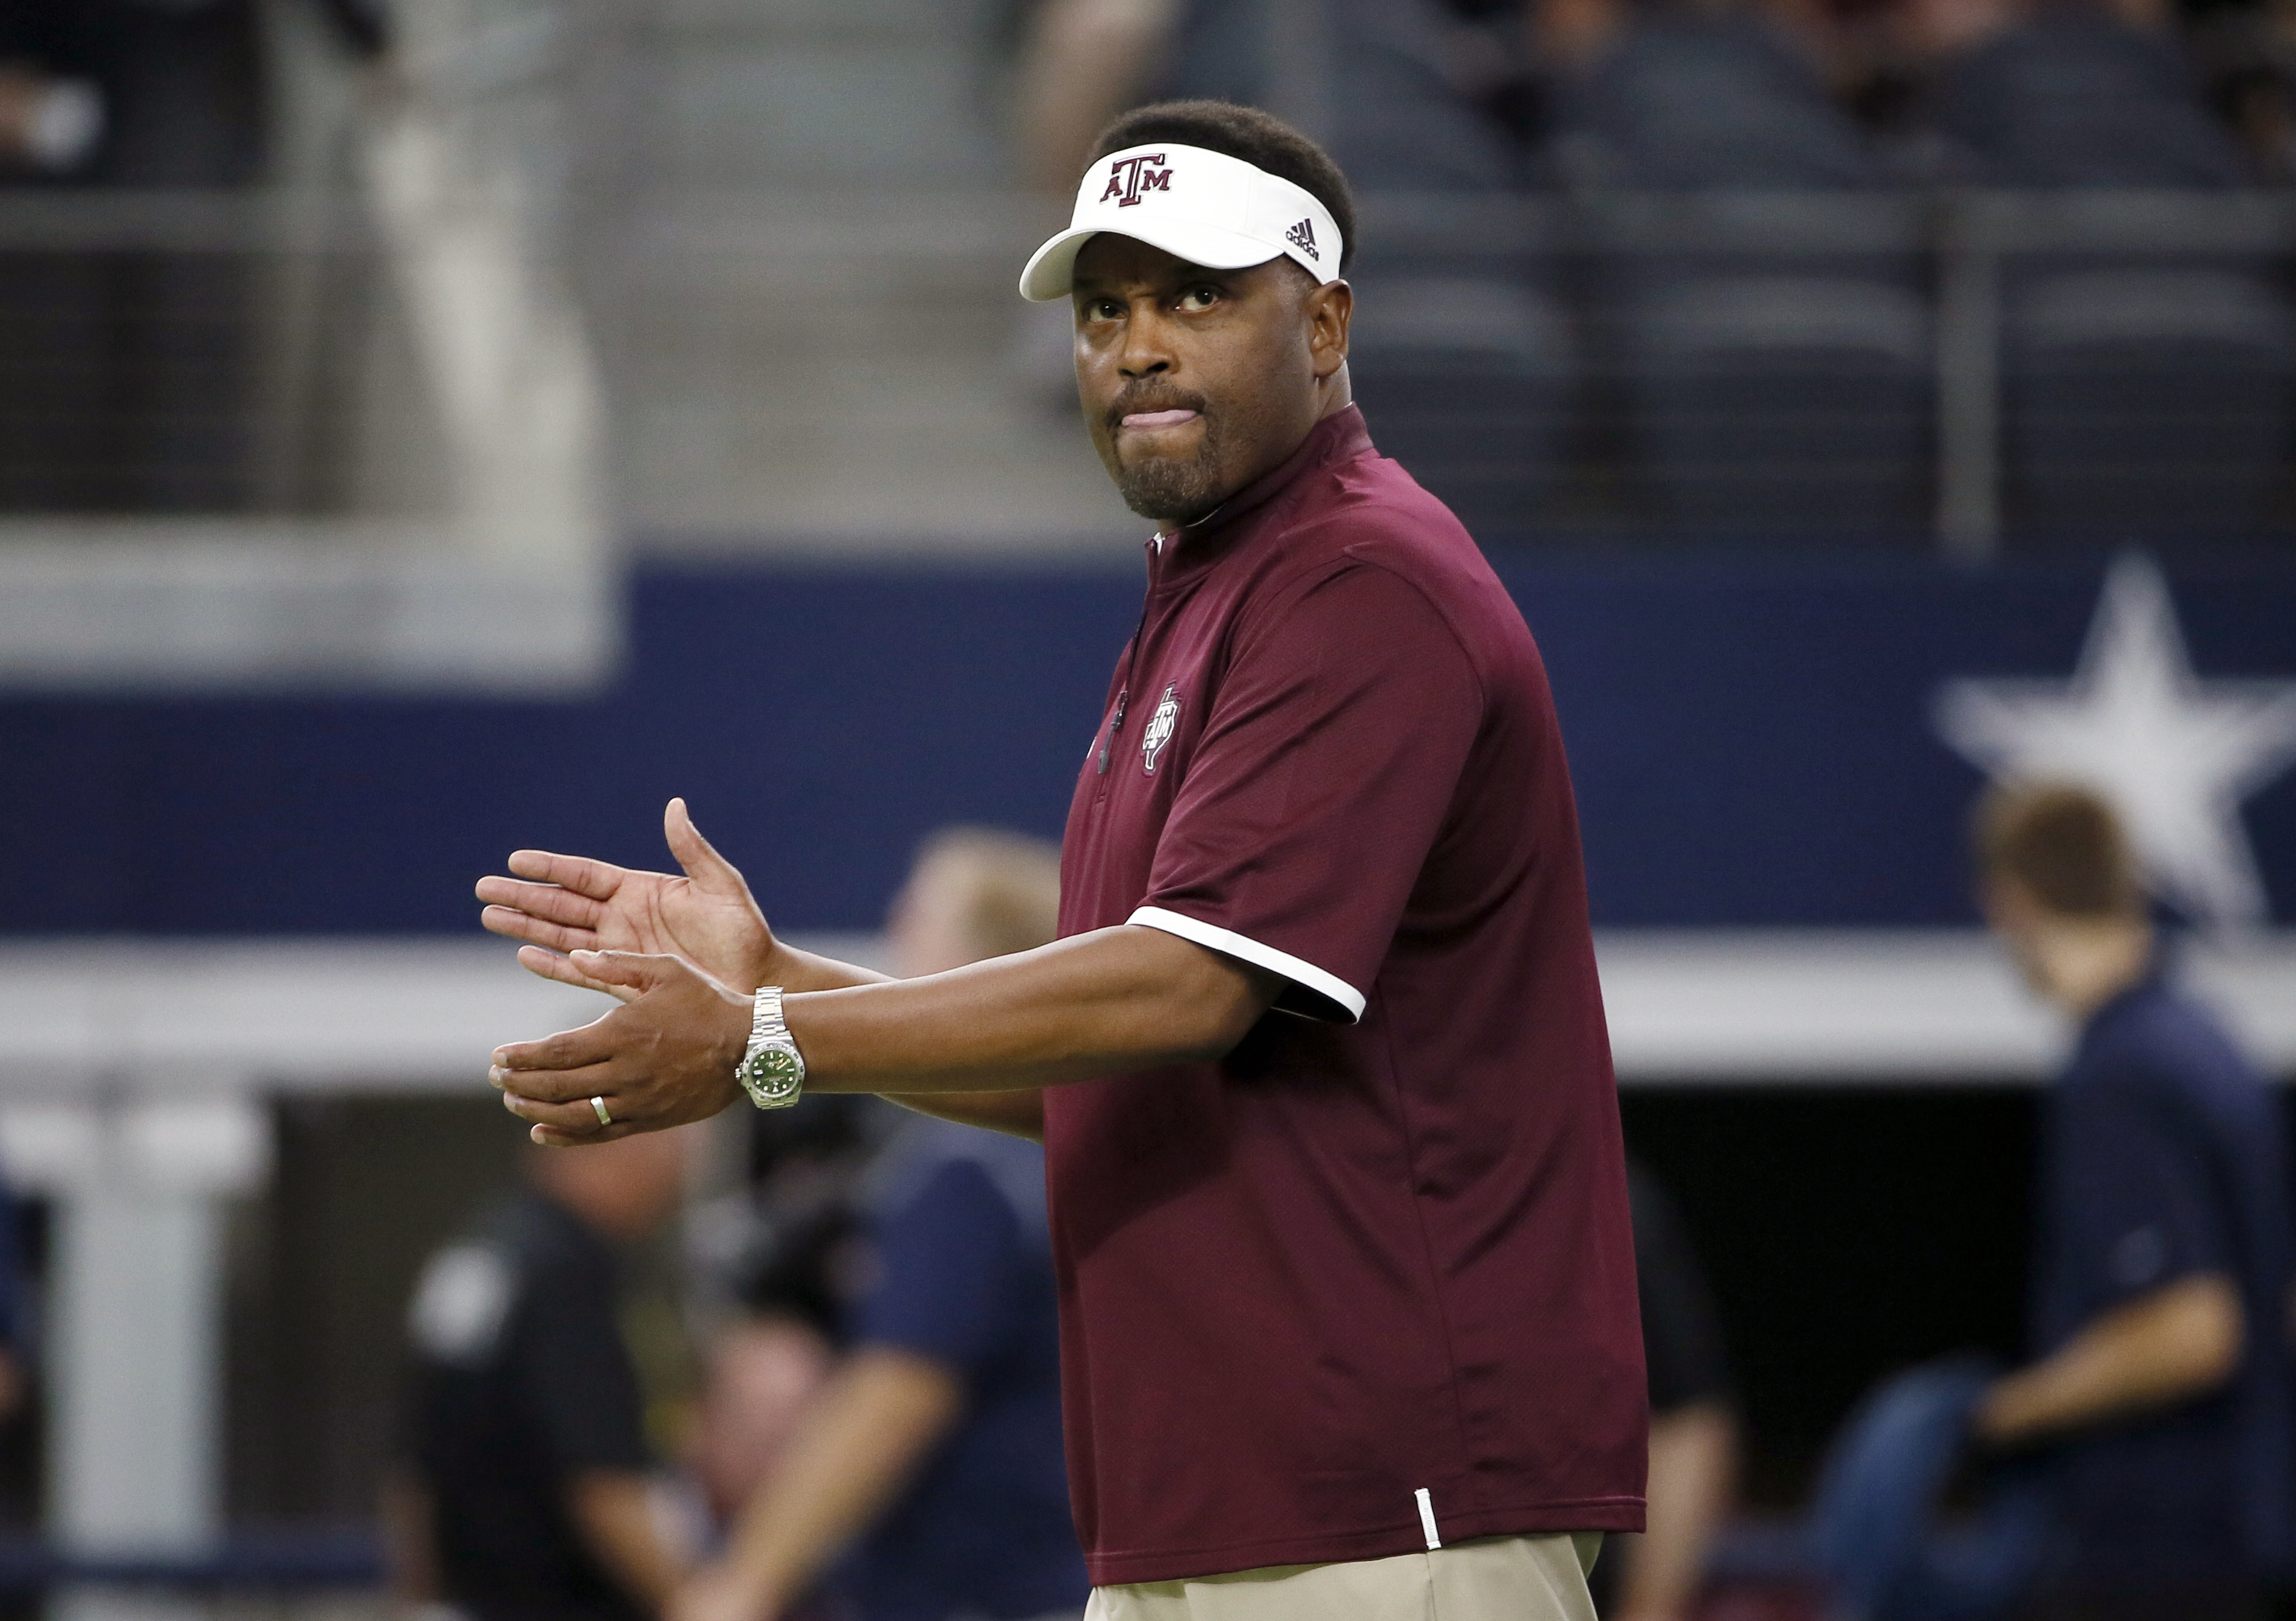 FILE - In this Sept. 26, 2015 file photo, Texas A&M coach Kevin Sumlin applauds his team as players warm up for an NCAA college football game against Arkansas, in Arlington, Texas. The Aggies have lost some of the swag that came when Johnny Football took